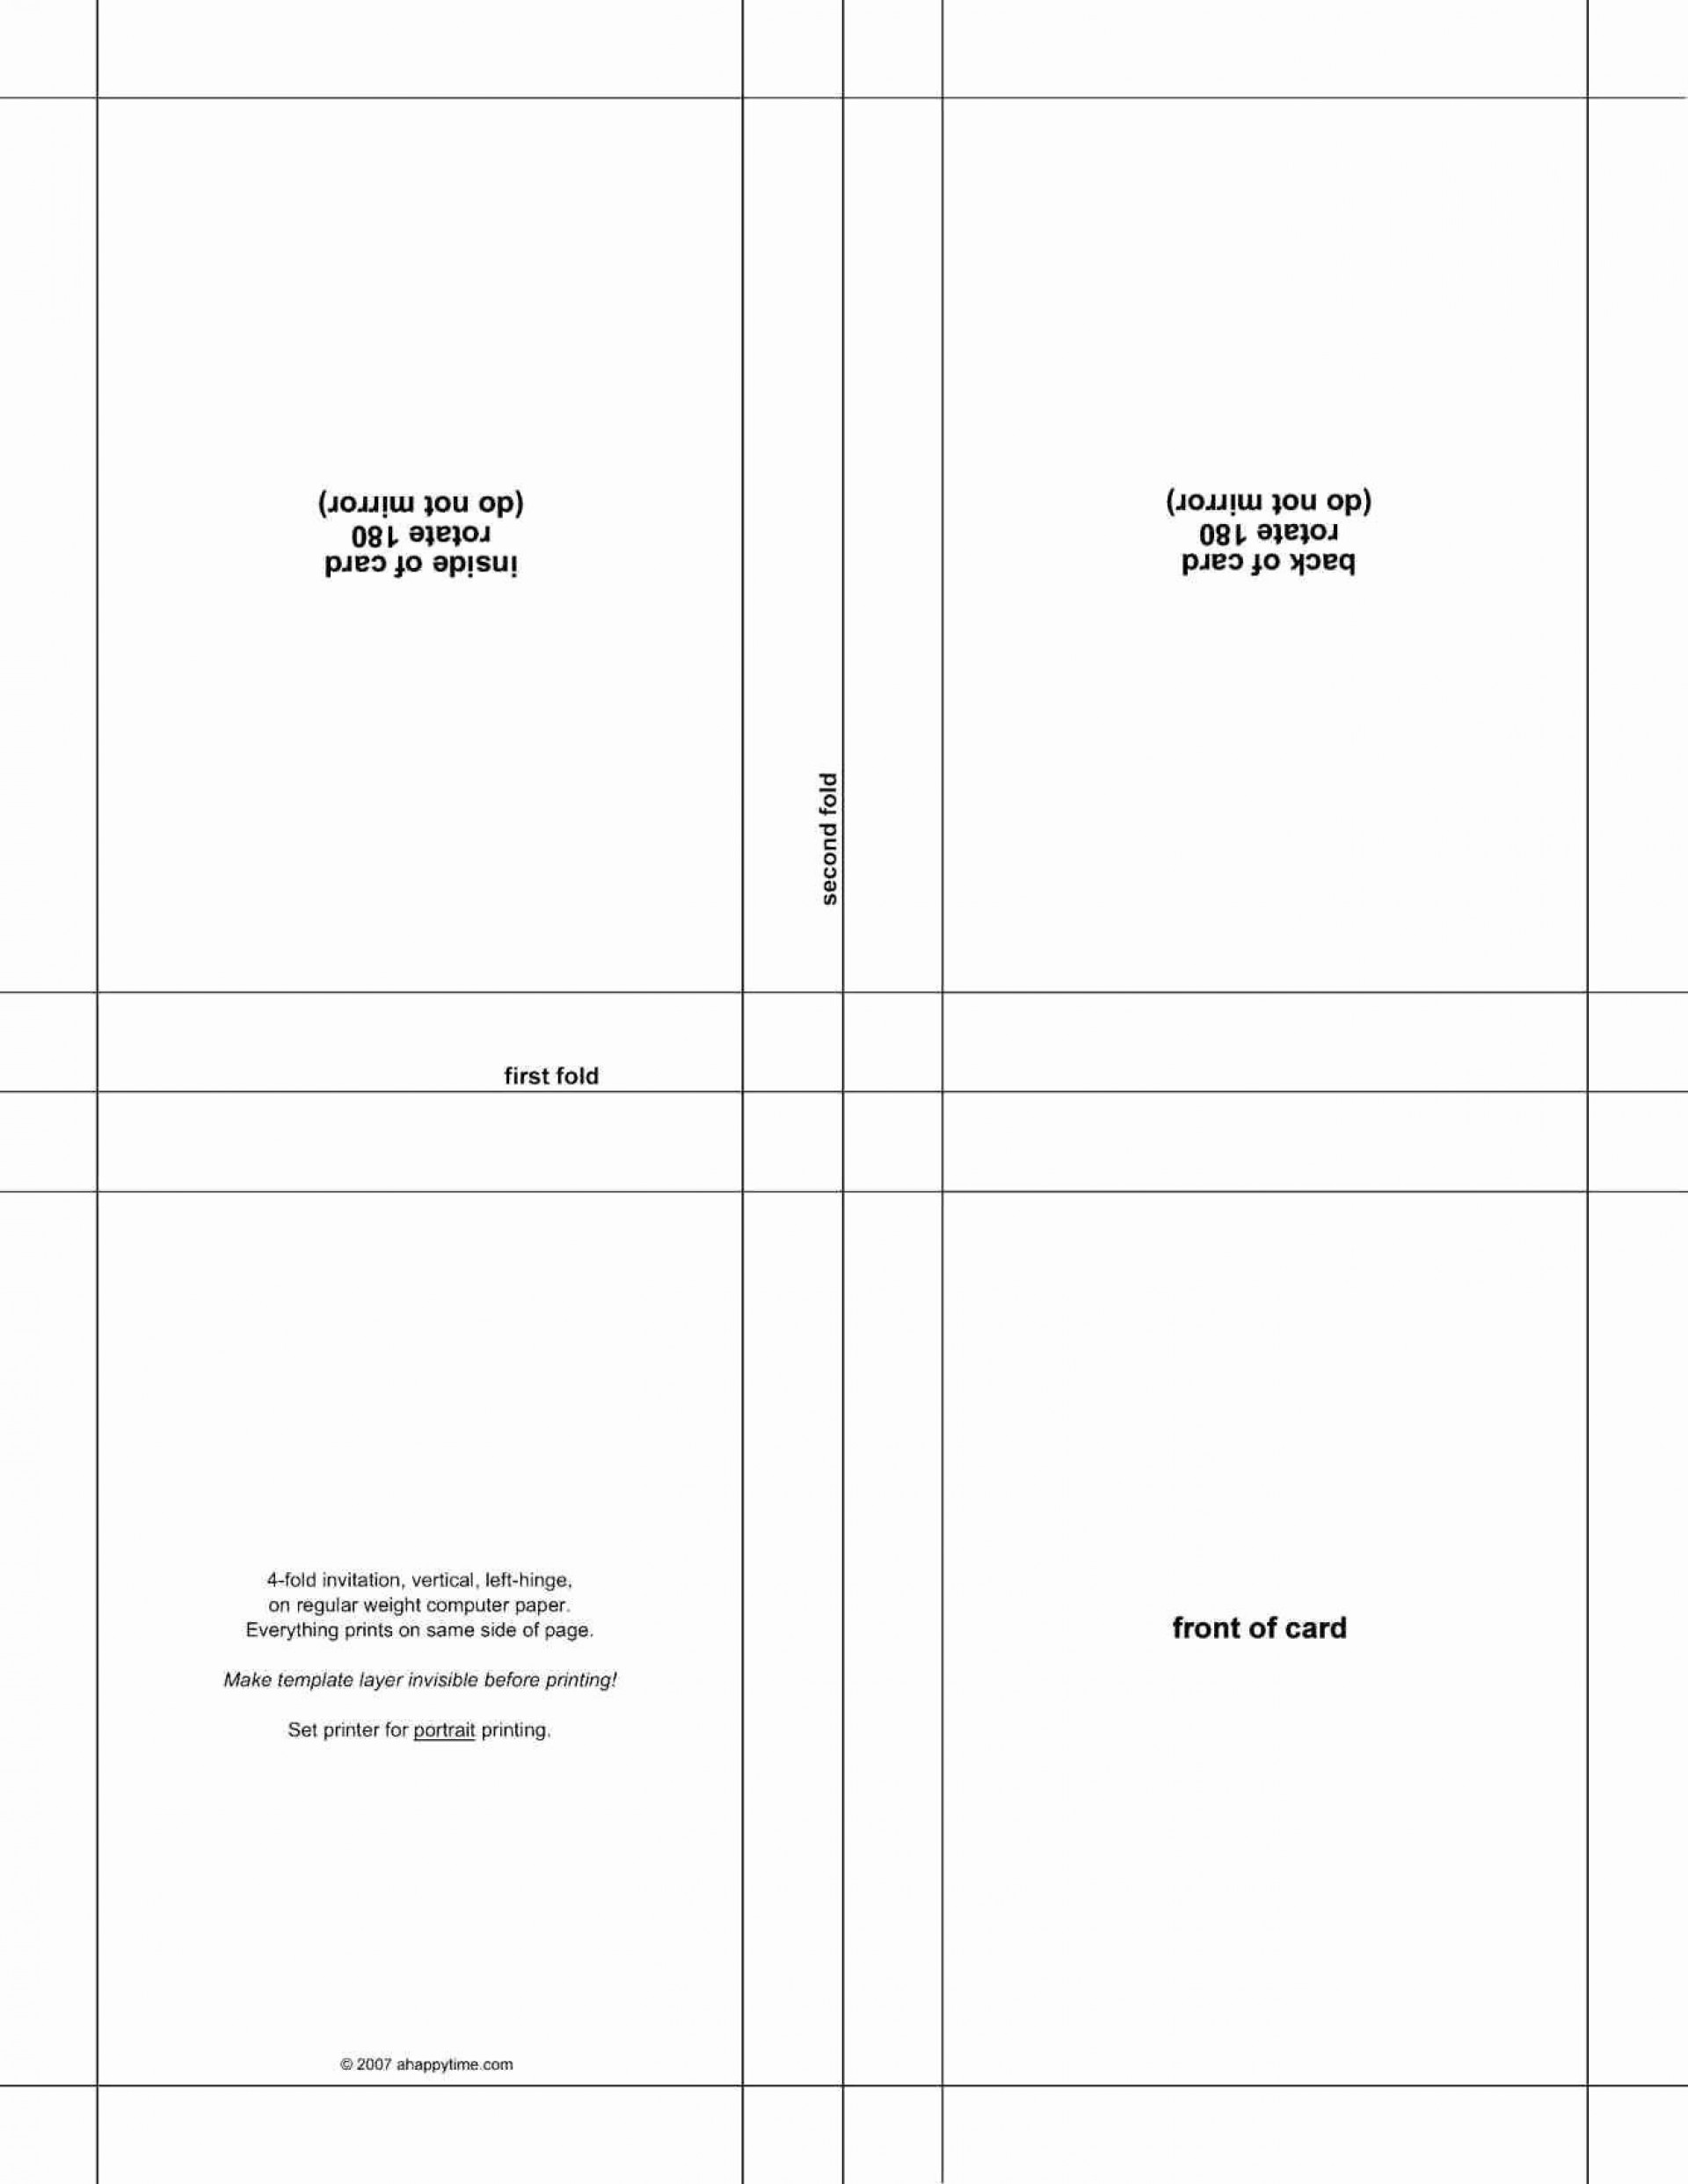 005 Archaicawful Birthday Card Template Word Quarter Fold Highest Quality Full